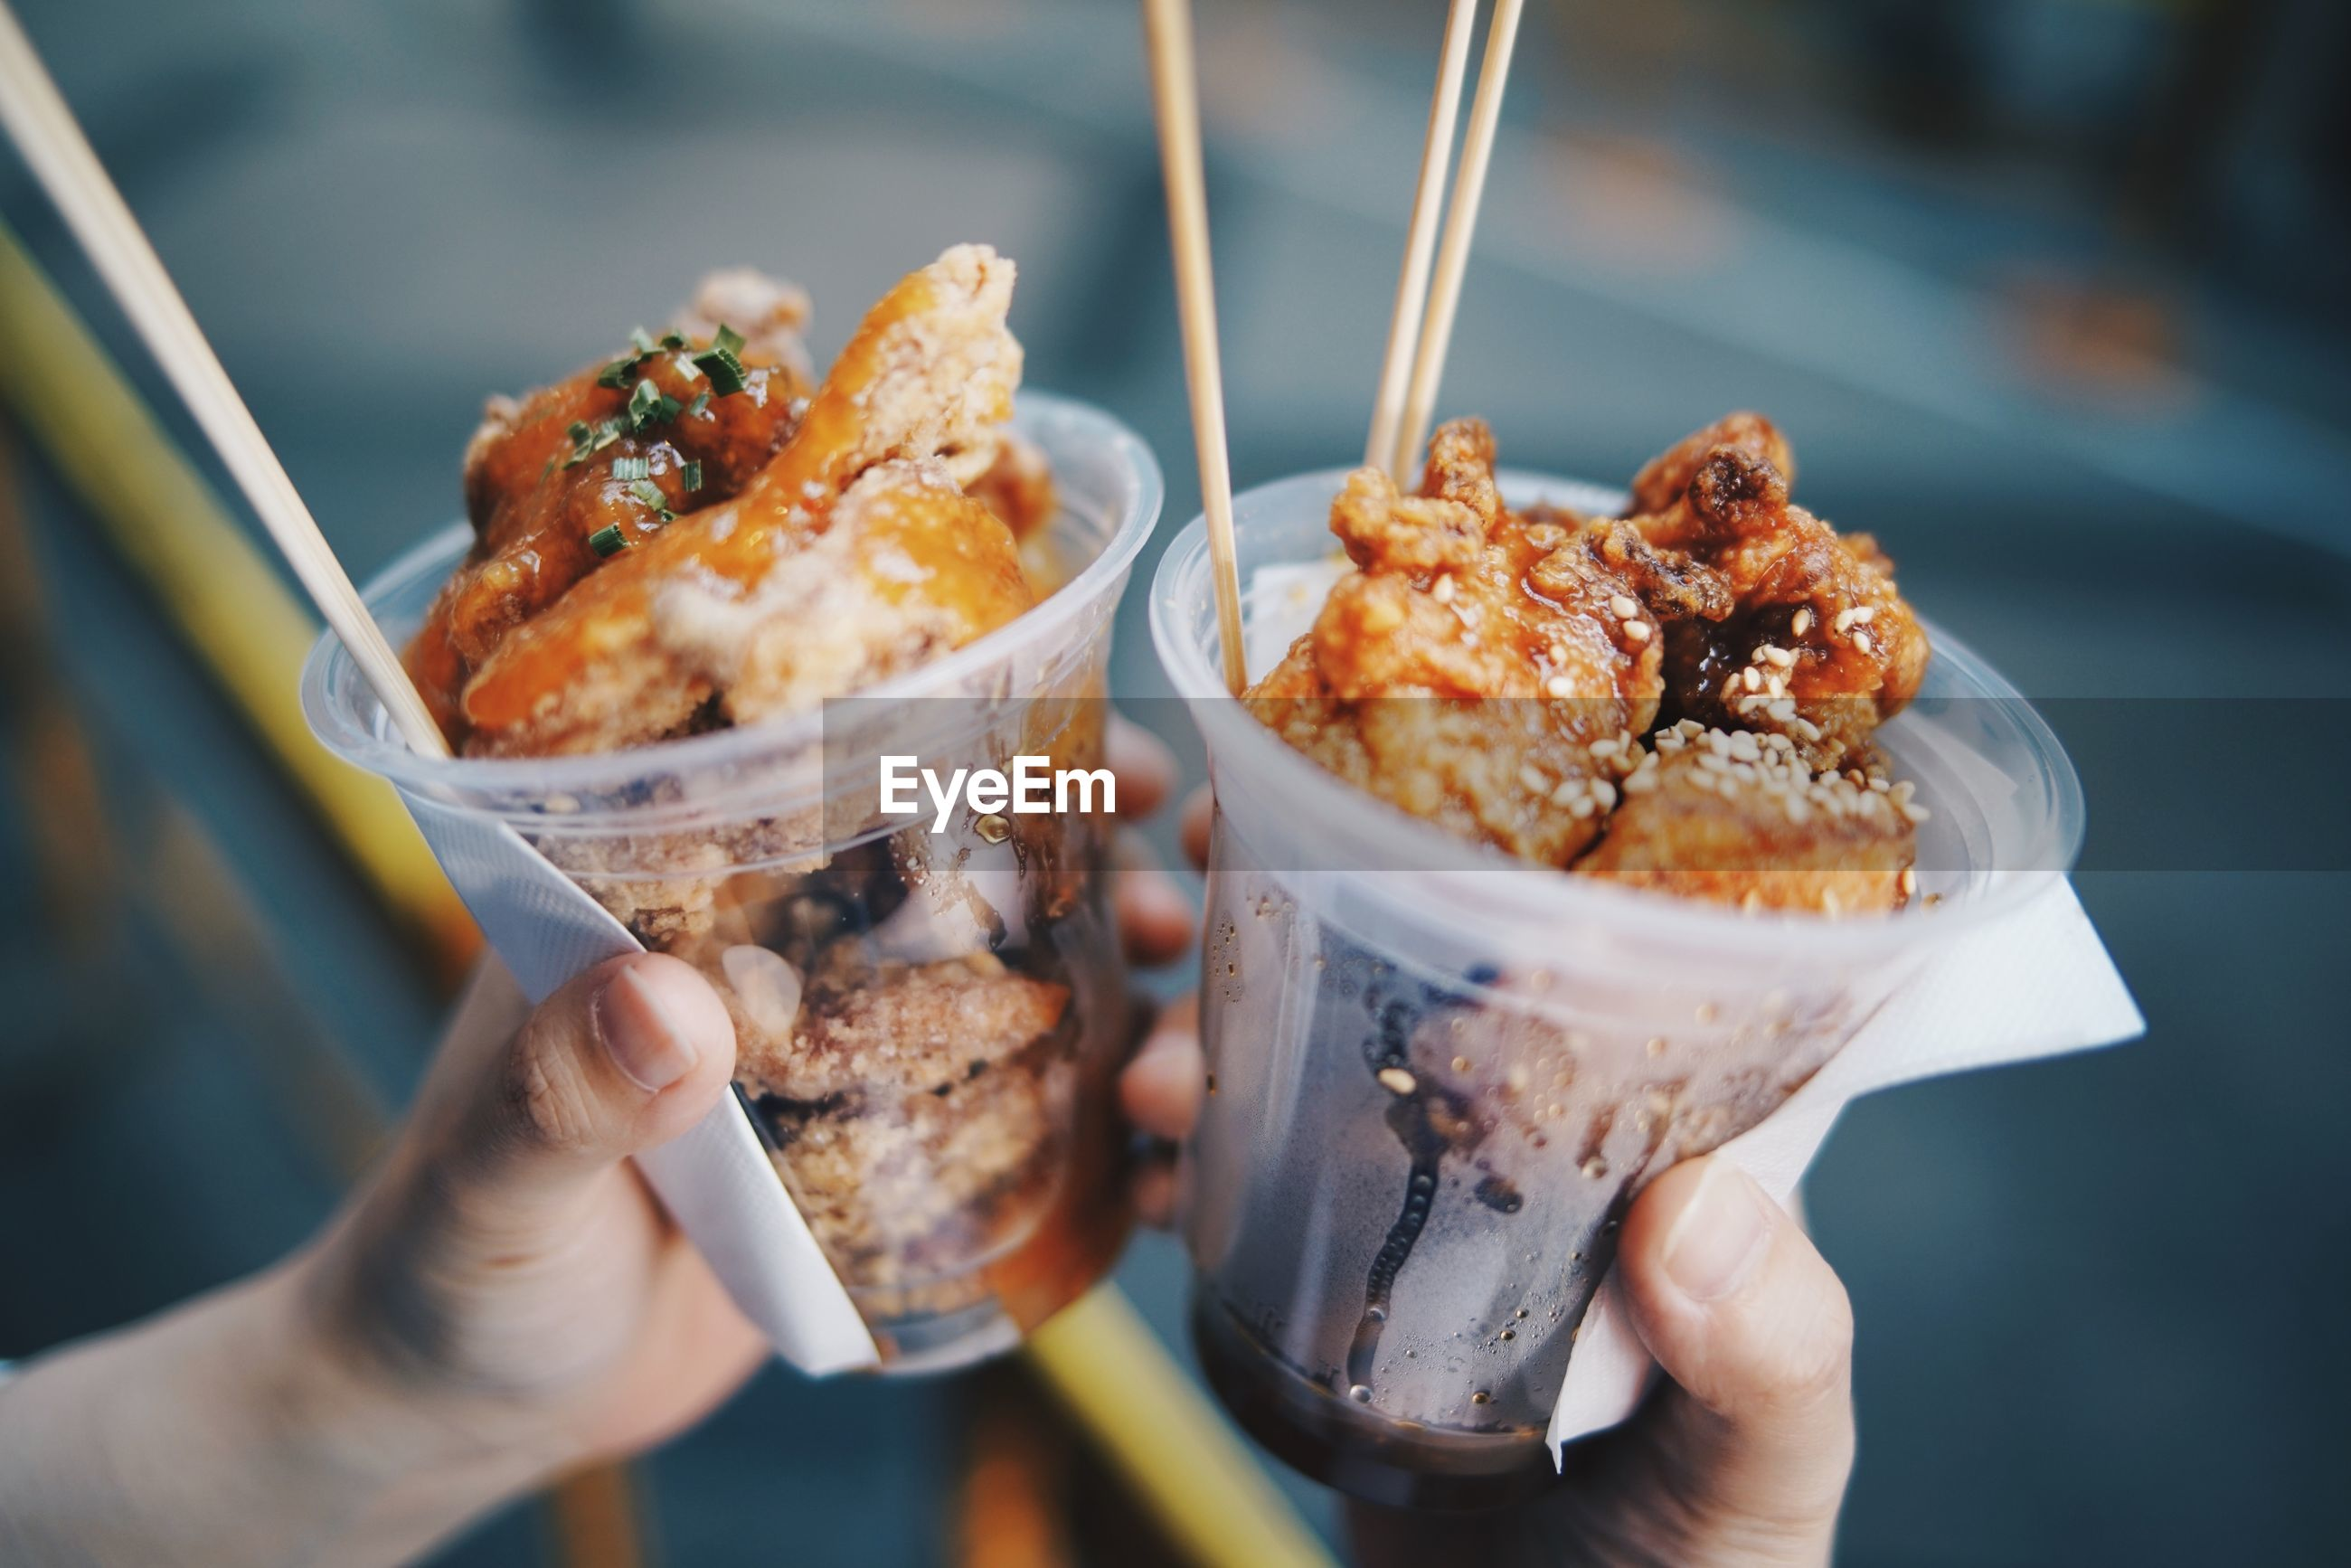 Close-up of hand holding food in disposable glasses outdoors